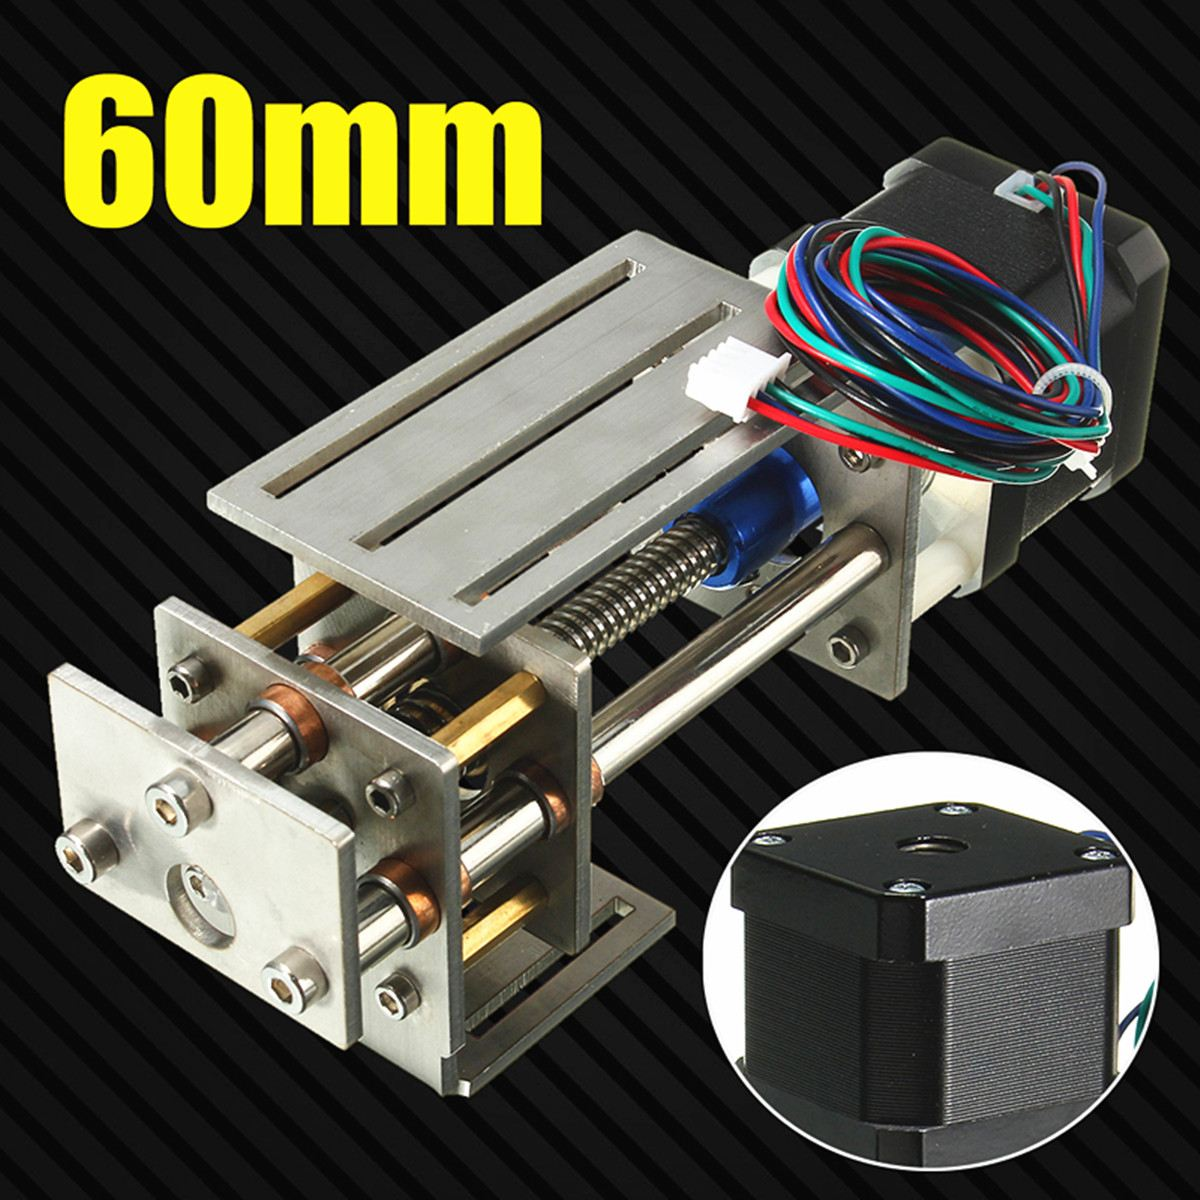 1Pcs 12V New 60MM 3 Axis DIY CNC Z Axis Slide Engraving Engrave Machine Milling Linear Motion high quality 1pcs z axis sliding working table 150mm 60mm 3 axis diy milling linear motion for cnc engraving machine new